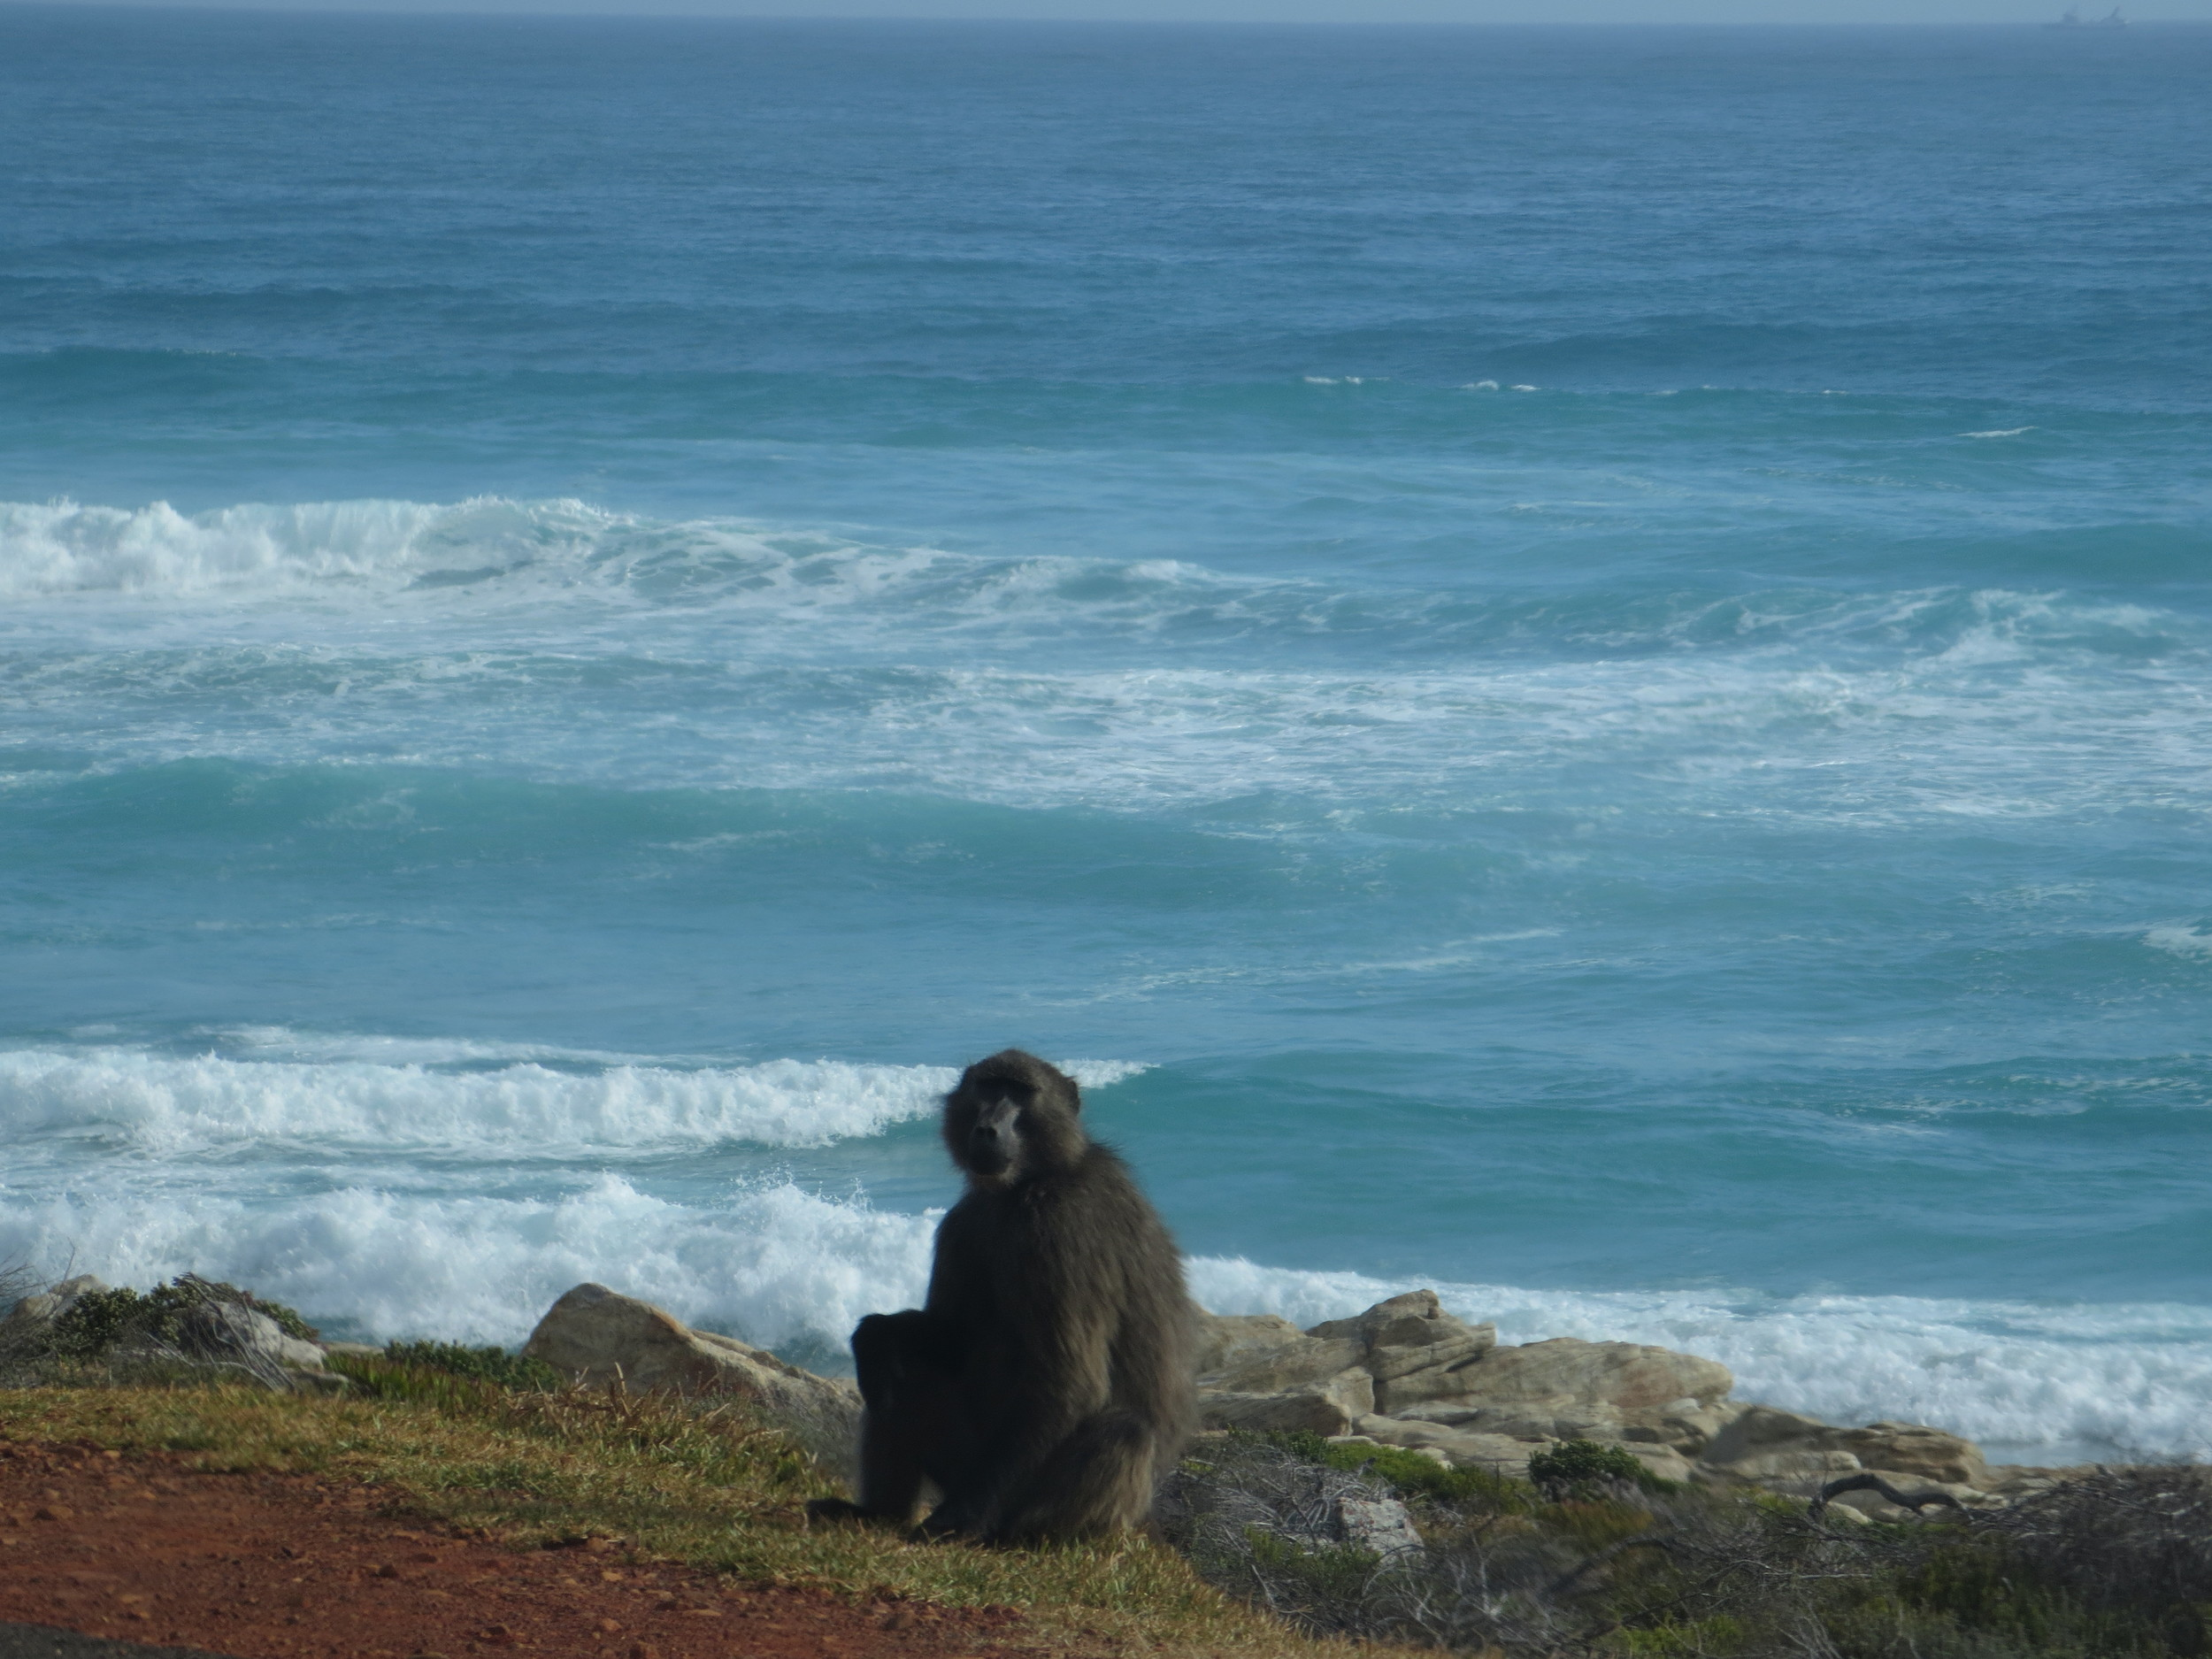 On out way to Cape Point and Cape of Good hope we saw several Baboons